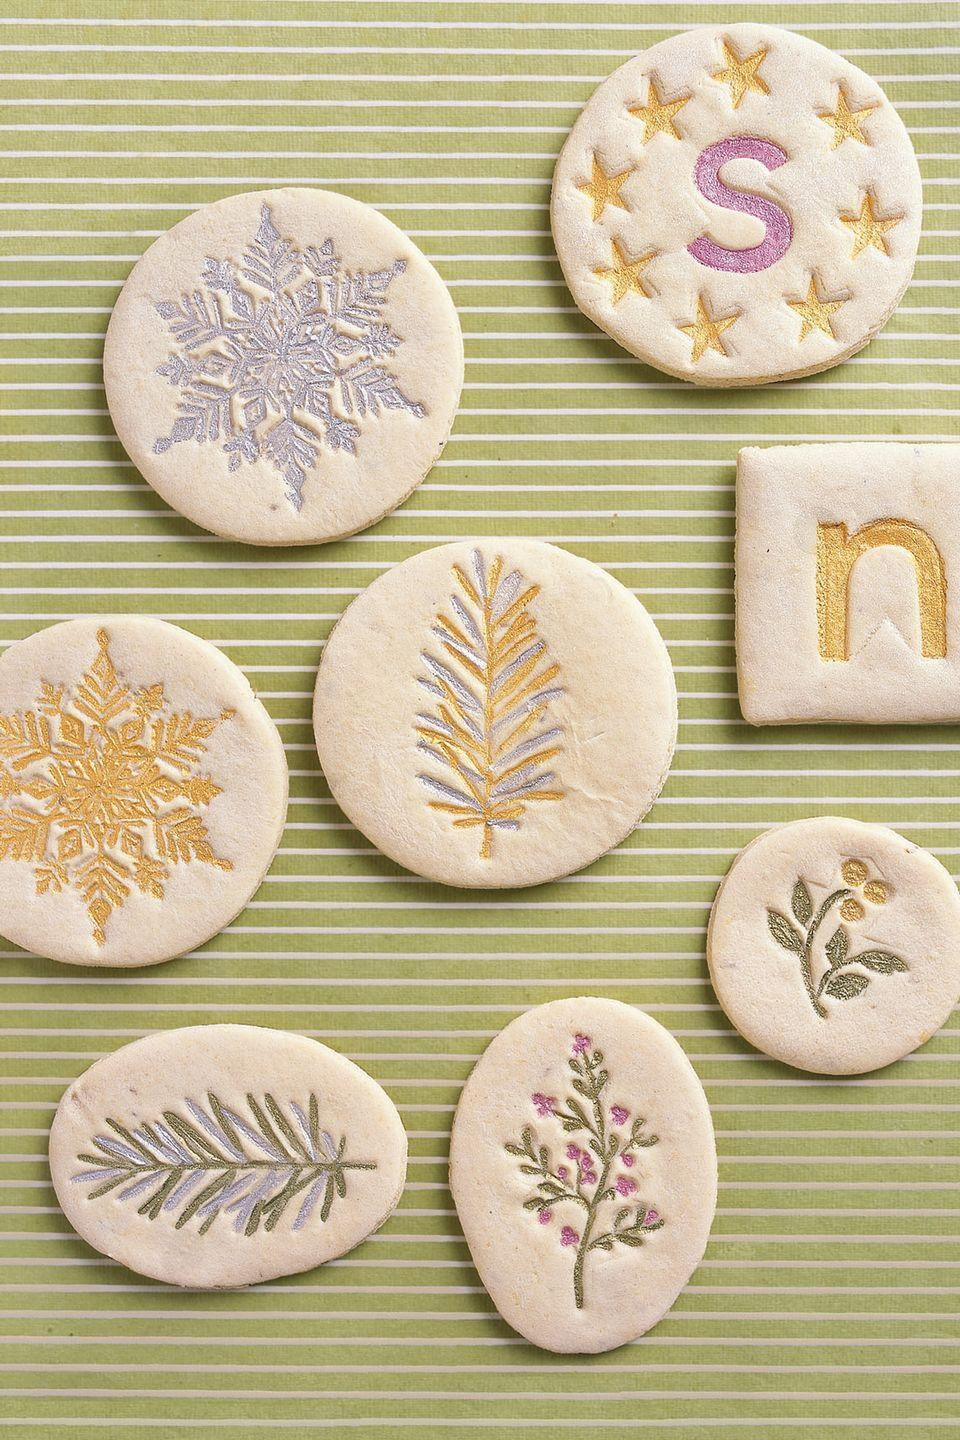 "<p>Bavarian cookies called <em>springerle</em> are known for their distinctive flavor. The dough is rolled onto a floured surface, imprinted with clean, floured rubber stamps, dried overnight, and then baked.</p><p><a href=""https://www.countryliving.com/food-drinks/recipes/a1897/springerle-4361/?magazine=countryliving"" rel=""nofollow noopener"" target=""_blank"" data-ylk=""slk:Get the recipe."" class=""link rapid-noclick-resp""><strong>Get the recipe.</strong></a></p>"